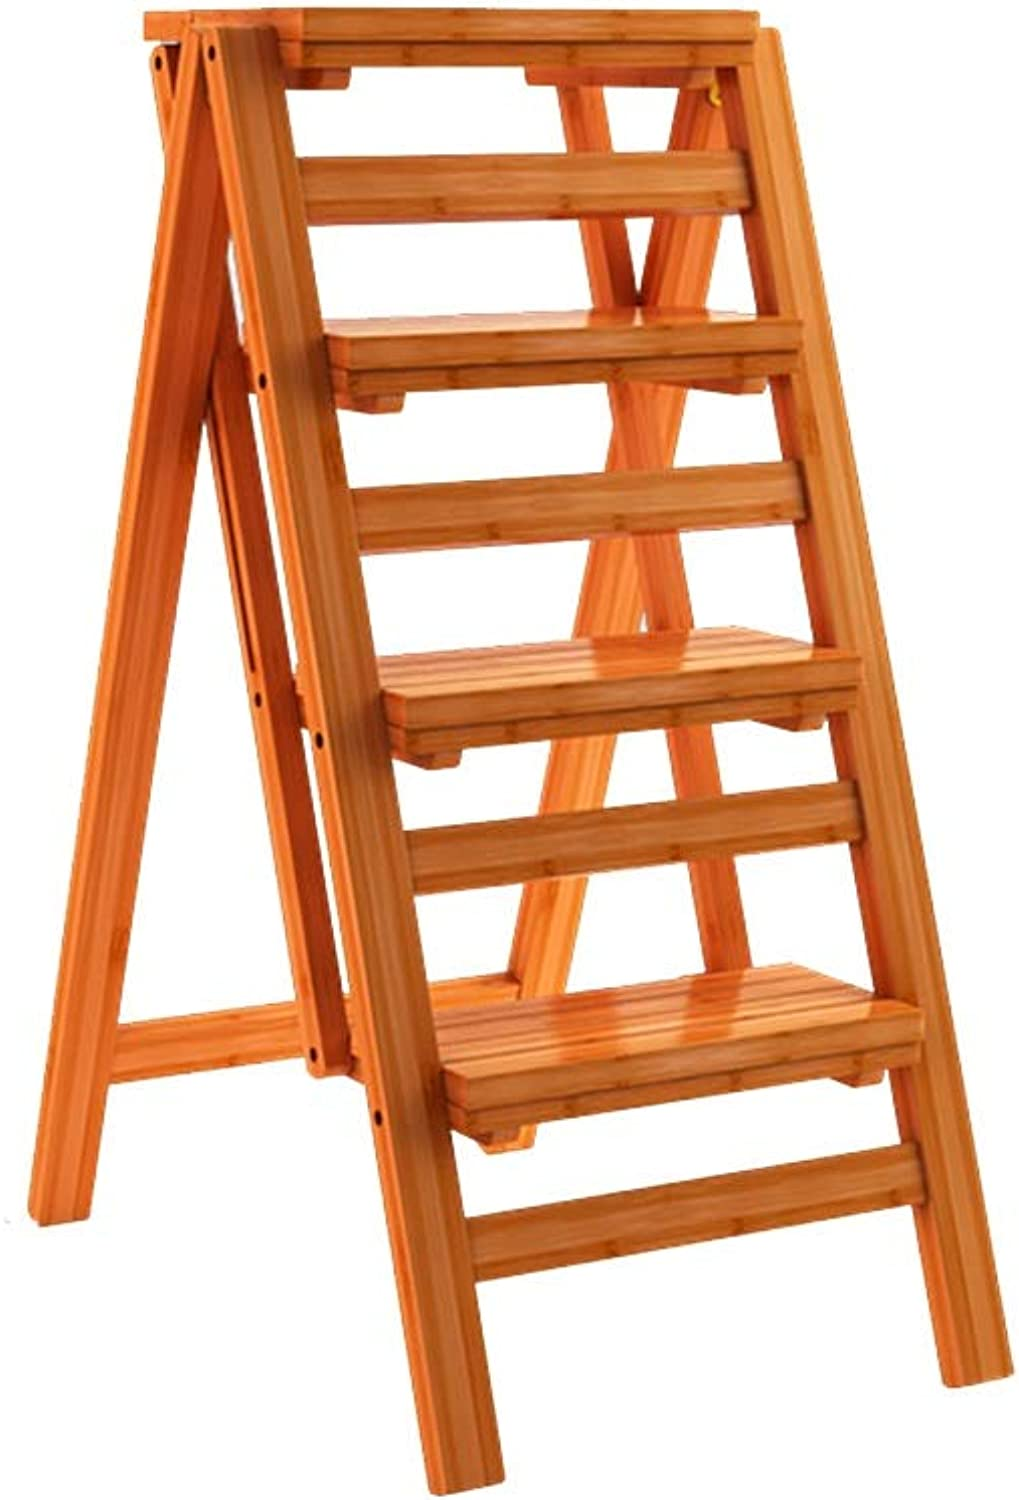 HGXC Stepladder Folding stool, bamboo stool portable small bench outdoor ladder (Size   Four-step ladder)